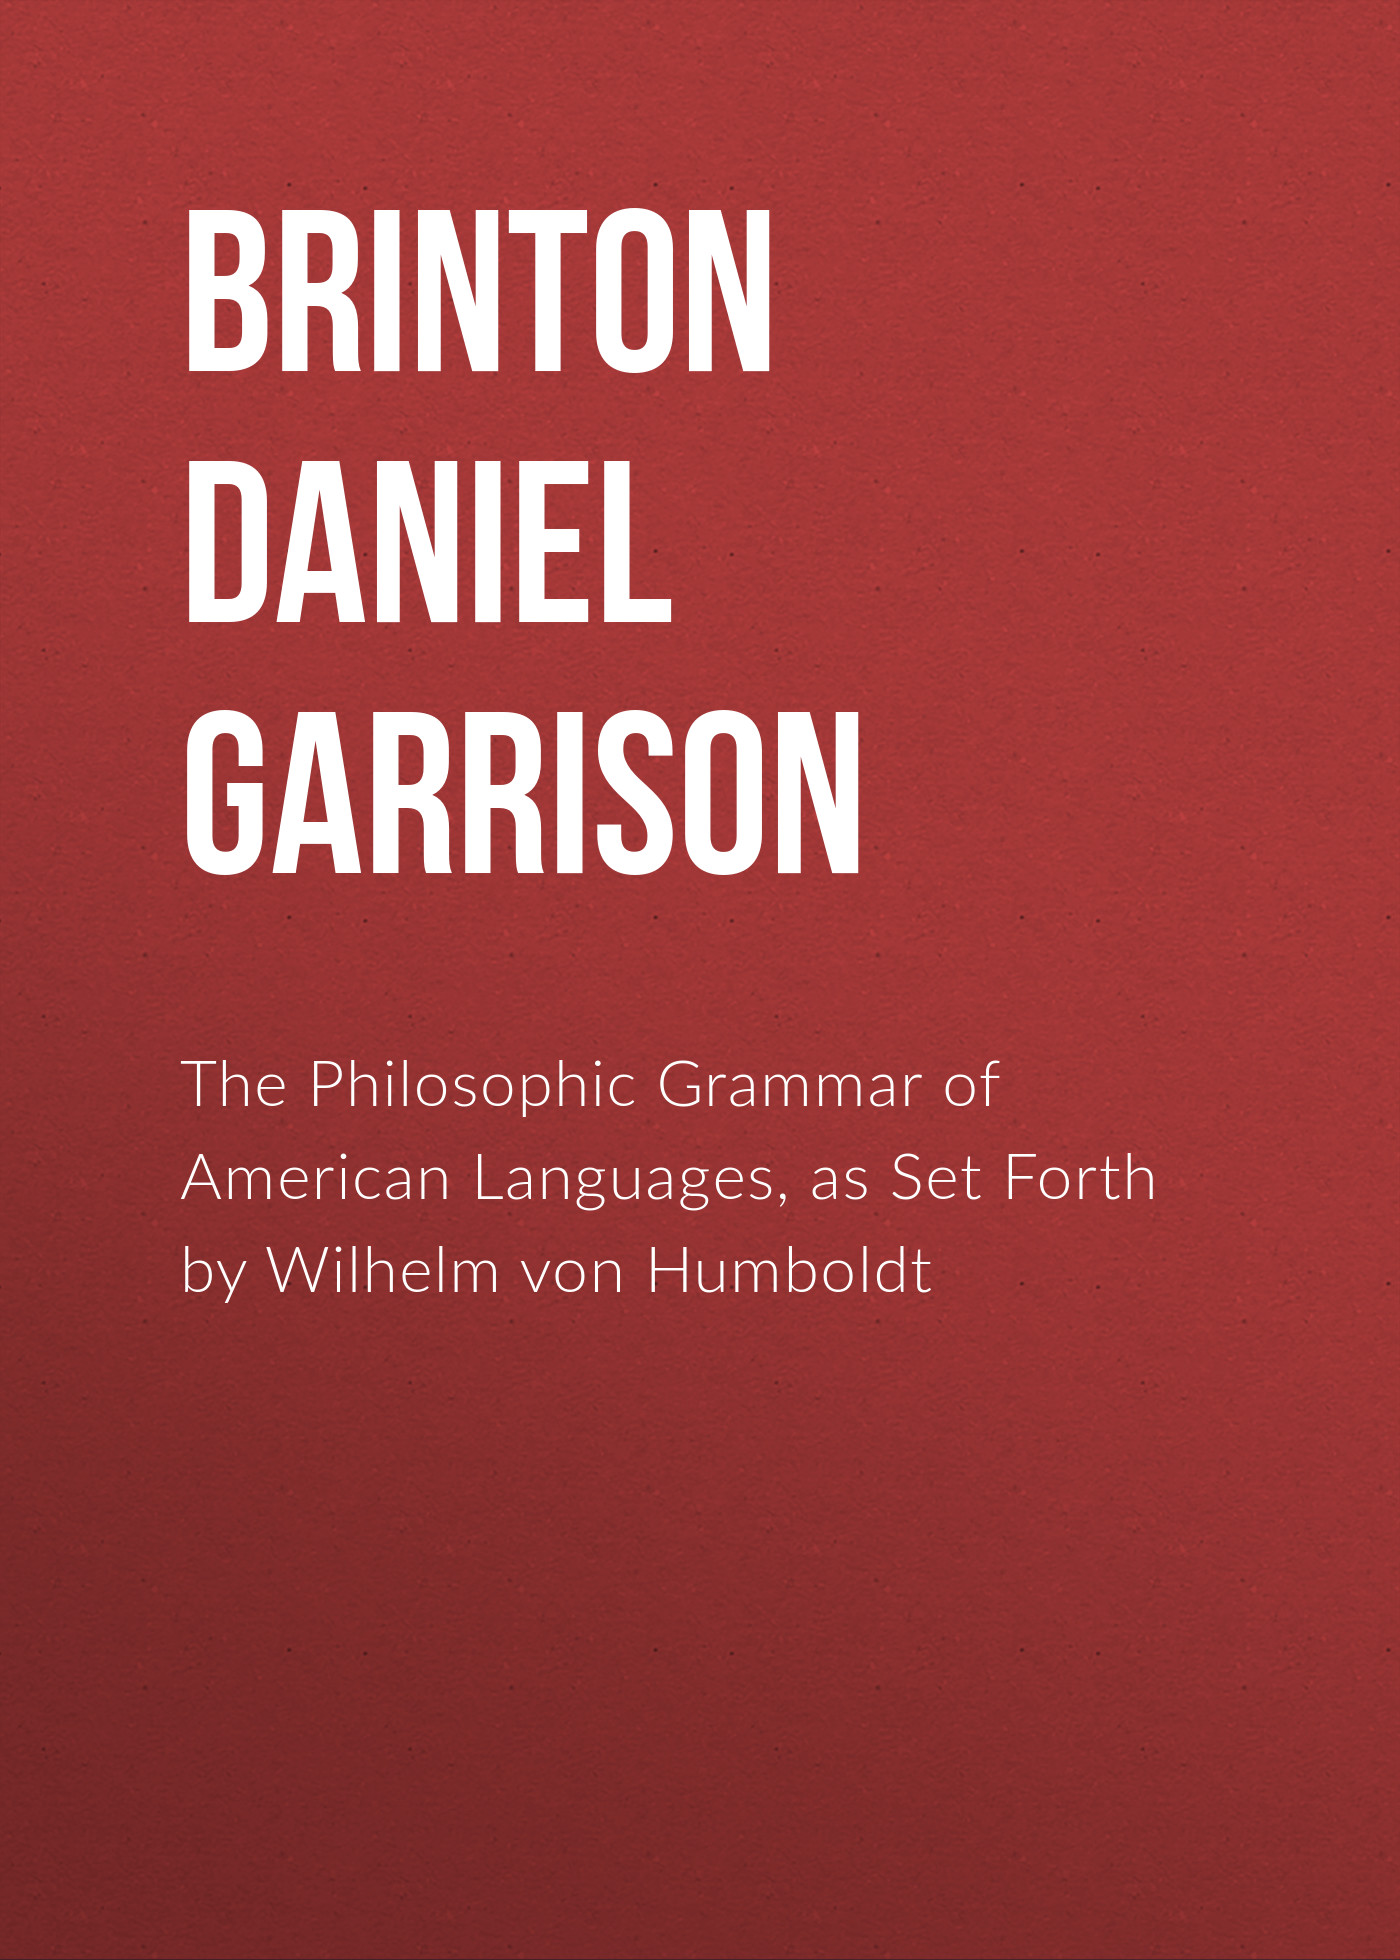 Brinton Daniel Garrison The Philosophic Grammar of American Languages, as Set Forth by Wilhelm von Humboldt